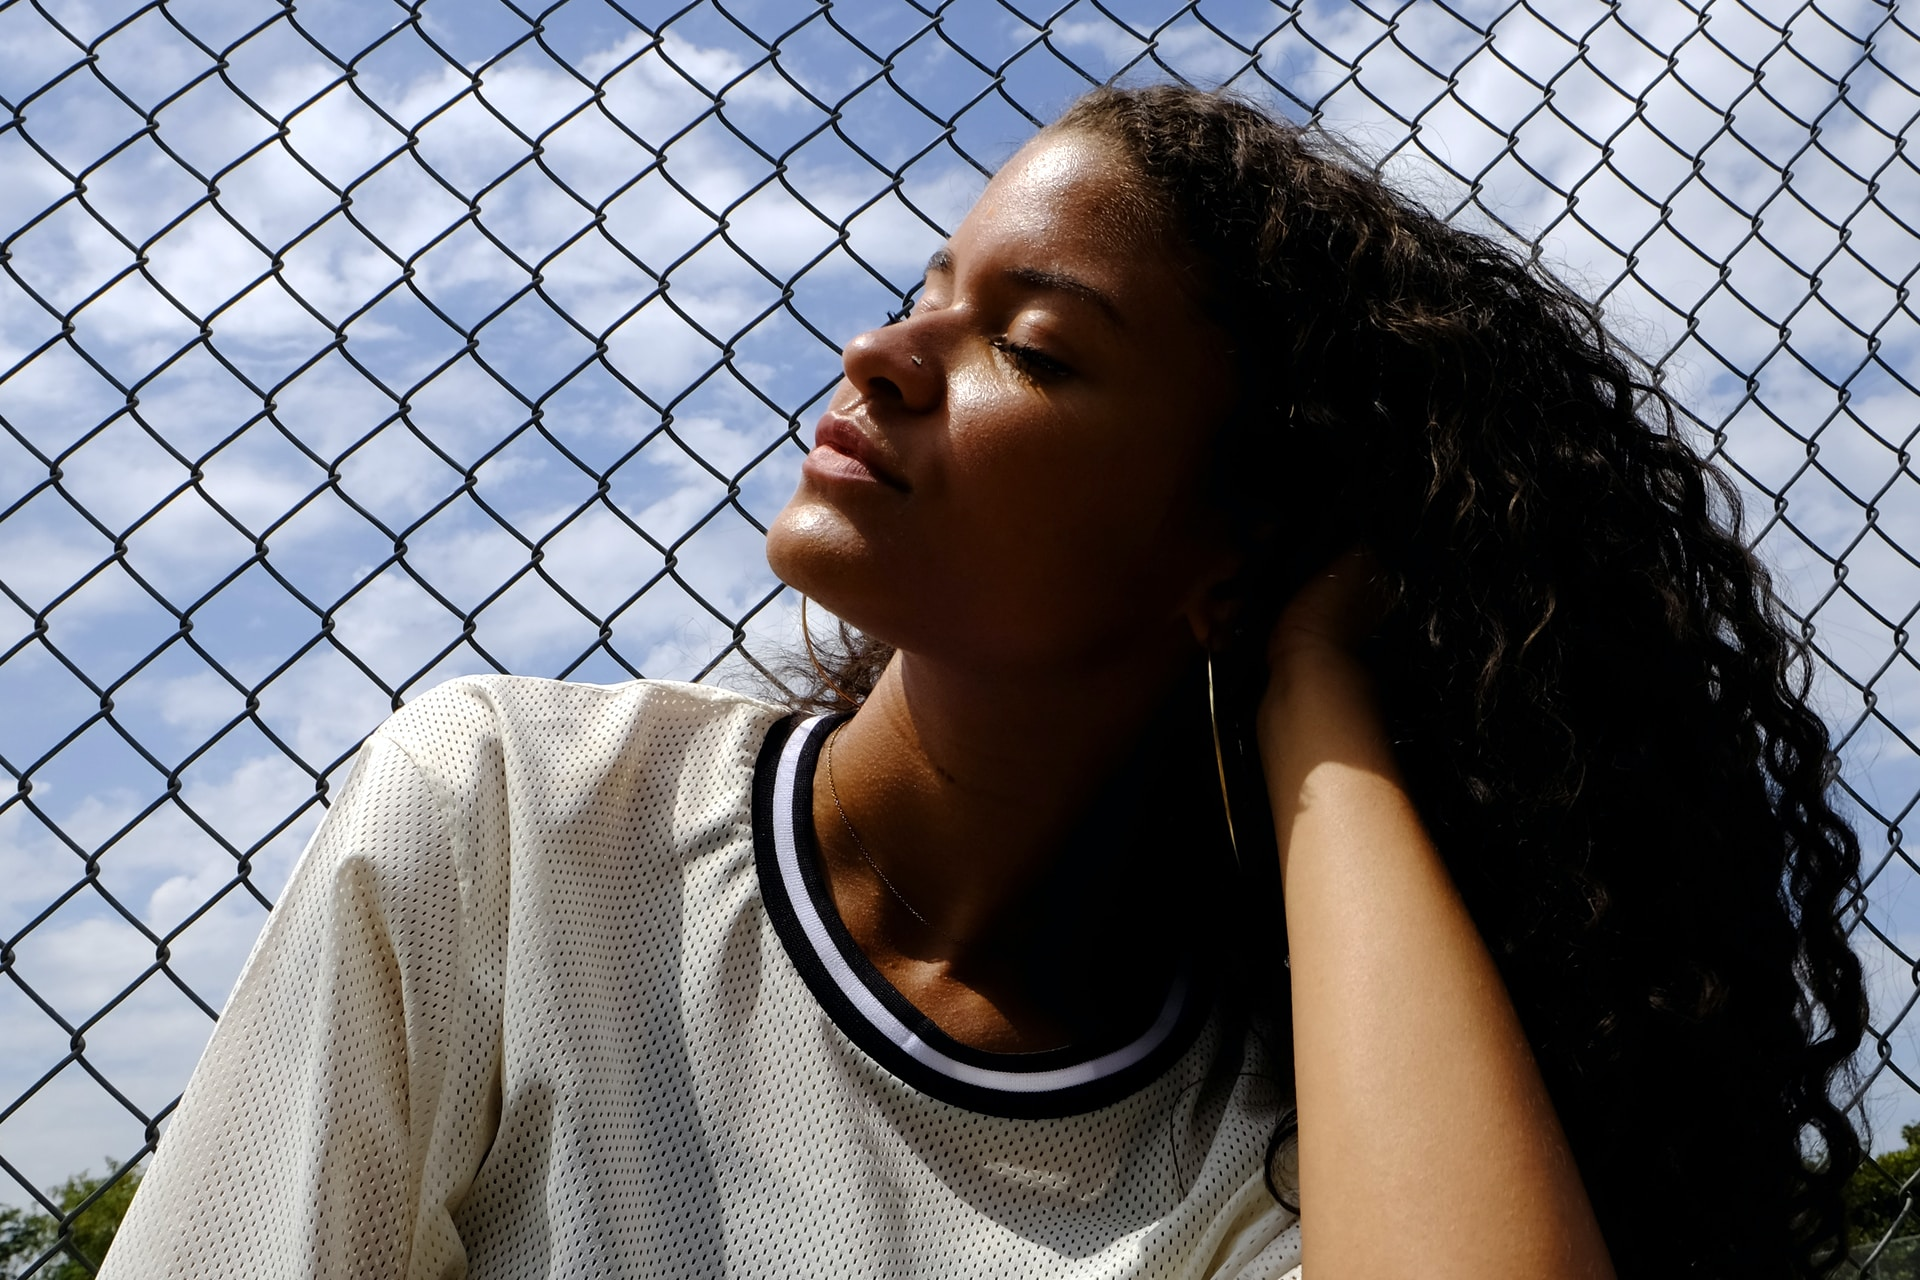 woman in white crew neck t-shirt leaning on chain link fence